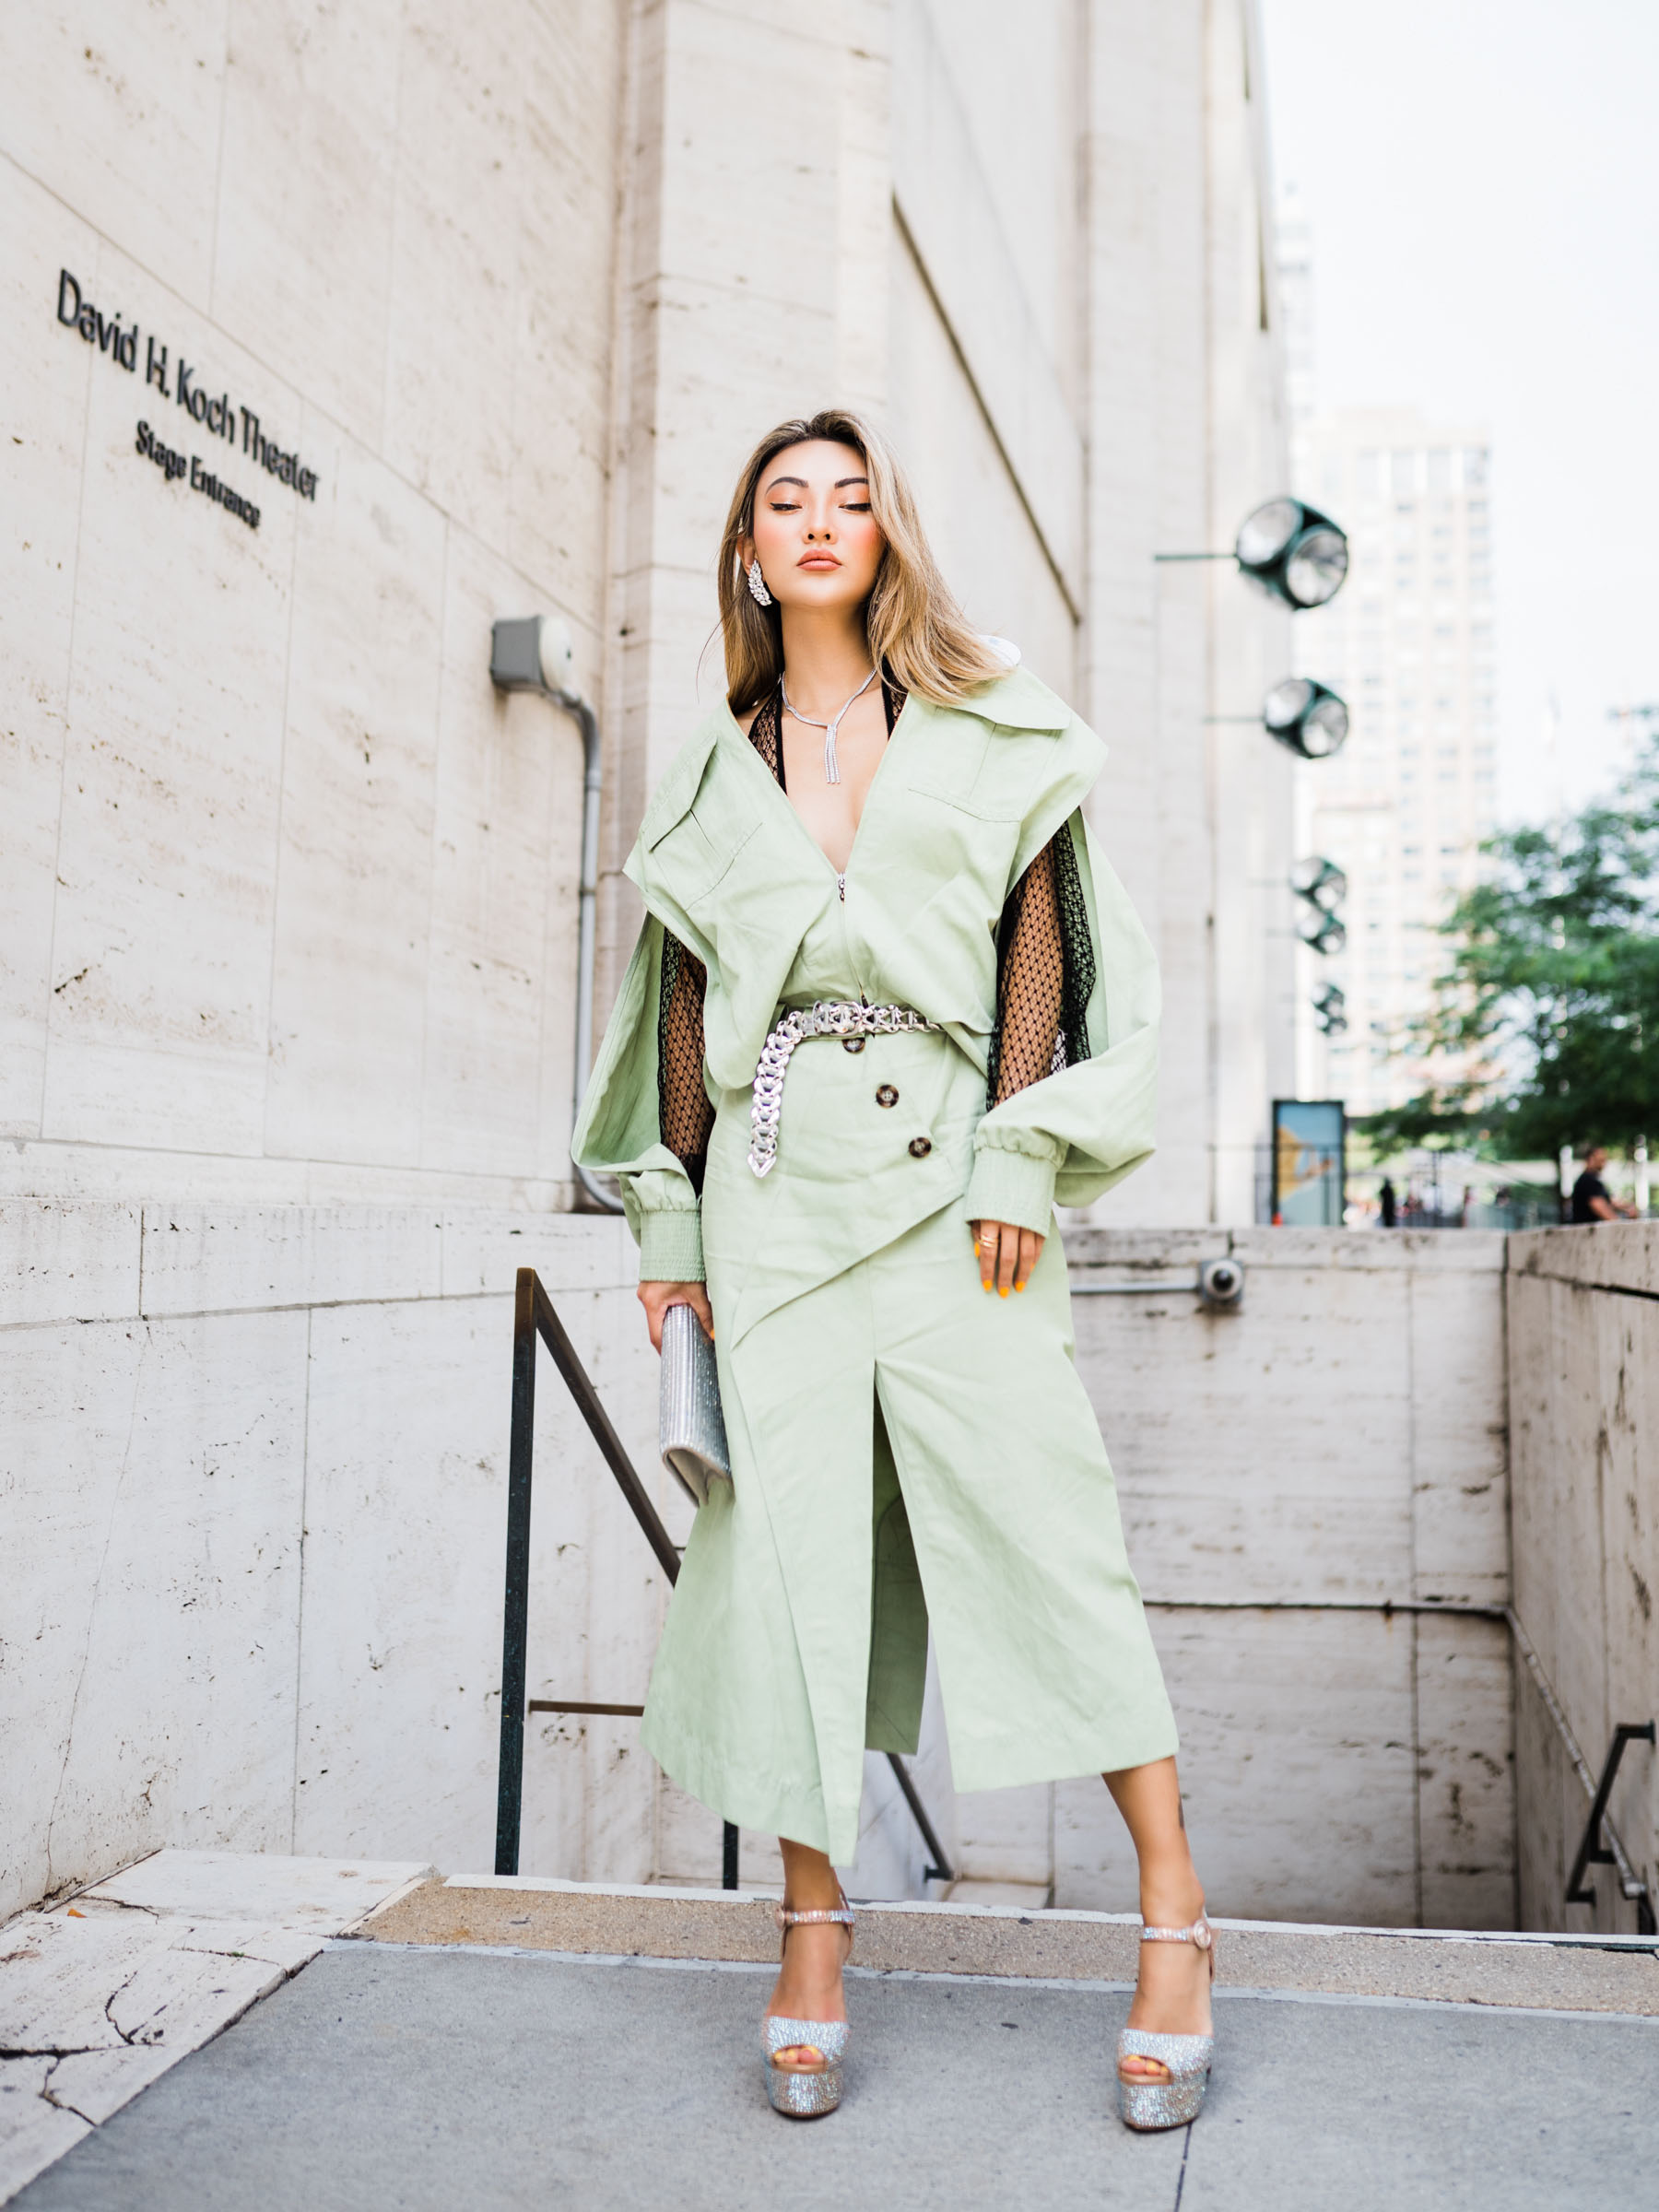 biggest fall fashion trends 2019, pistachio green, green fashion trend, monochromatic green outfit, roland mouret dress // Notjessfashion.com